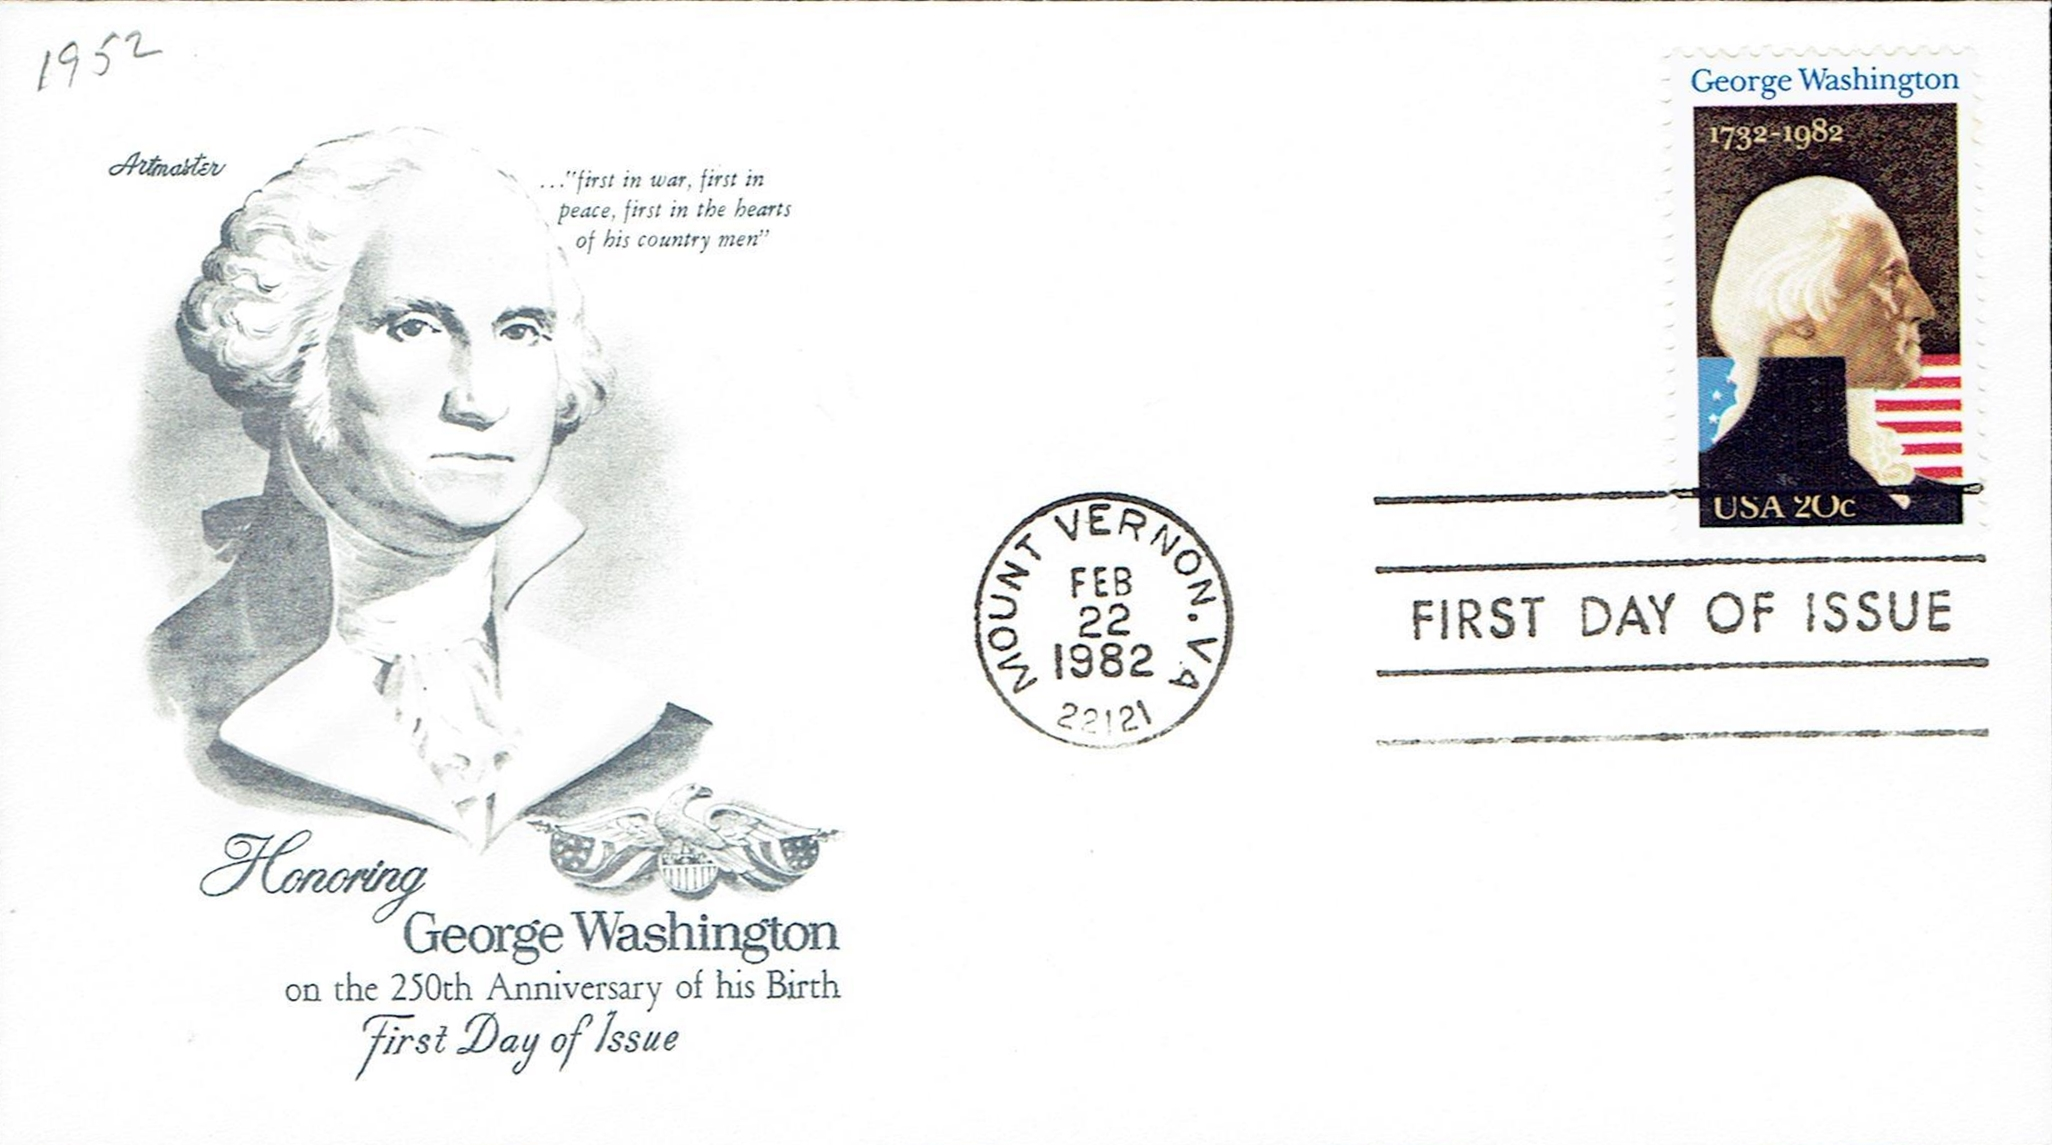 United States - Scott #1952 (1982) first day cover, Artmaster cachet